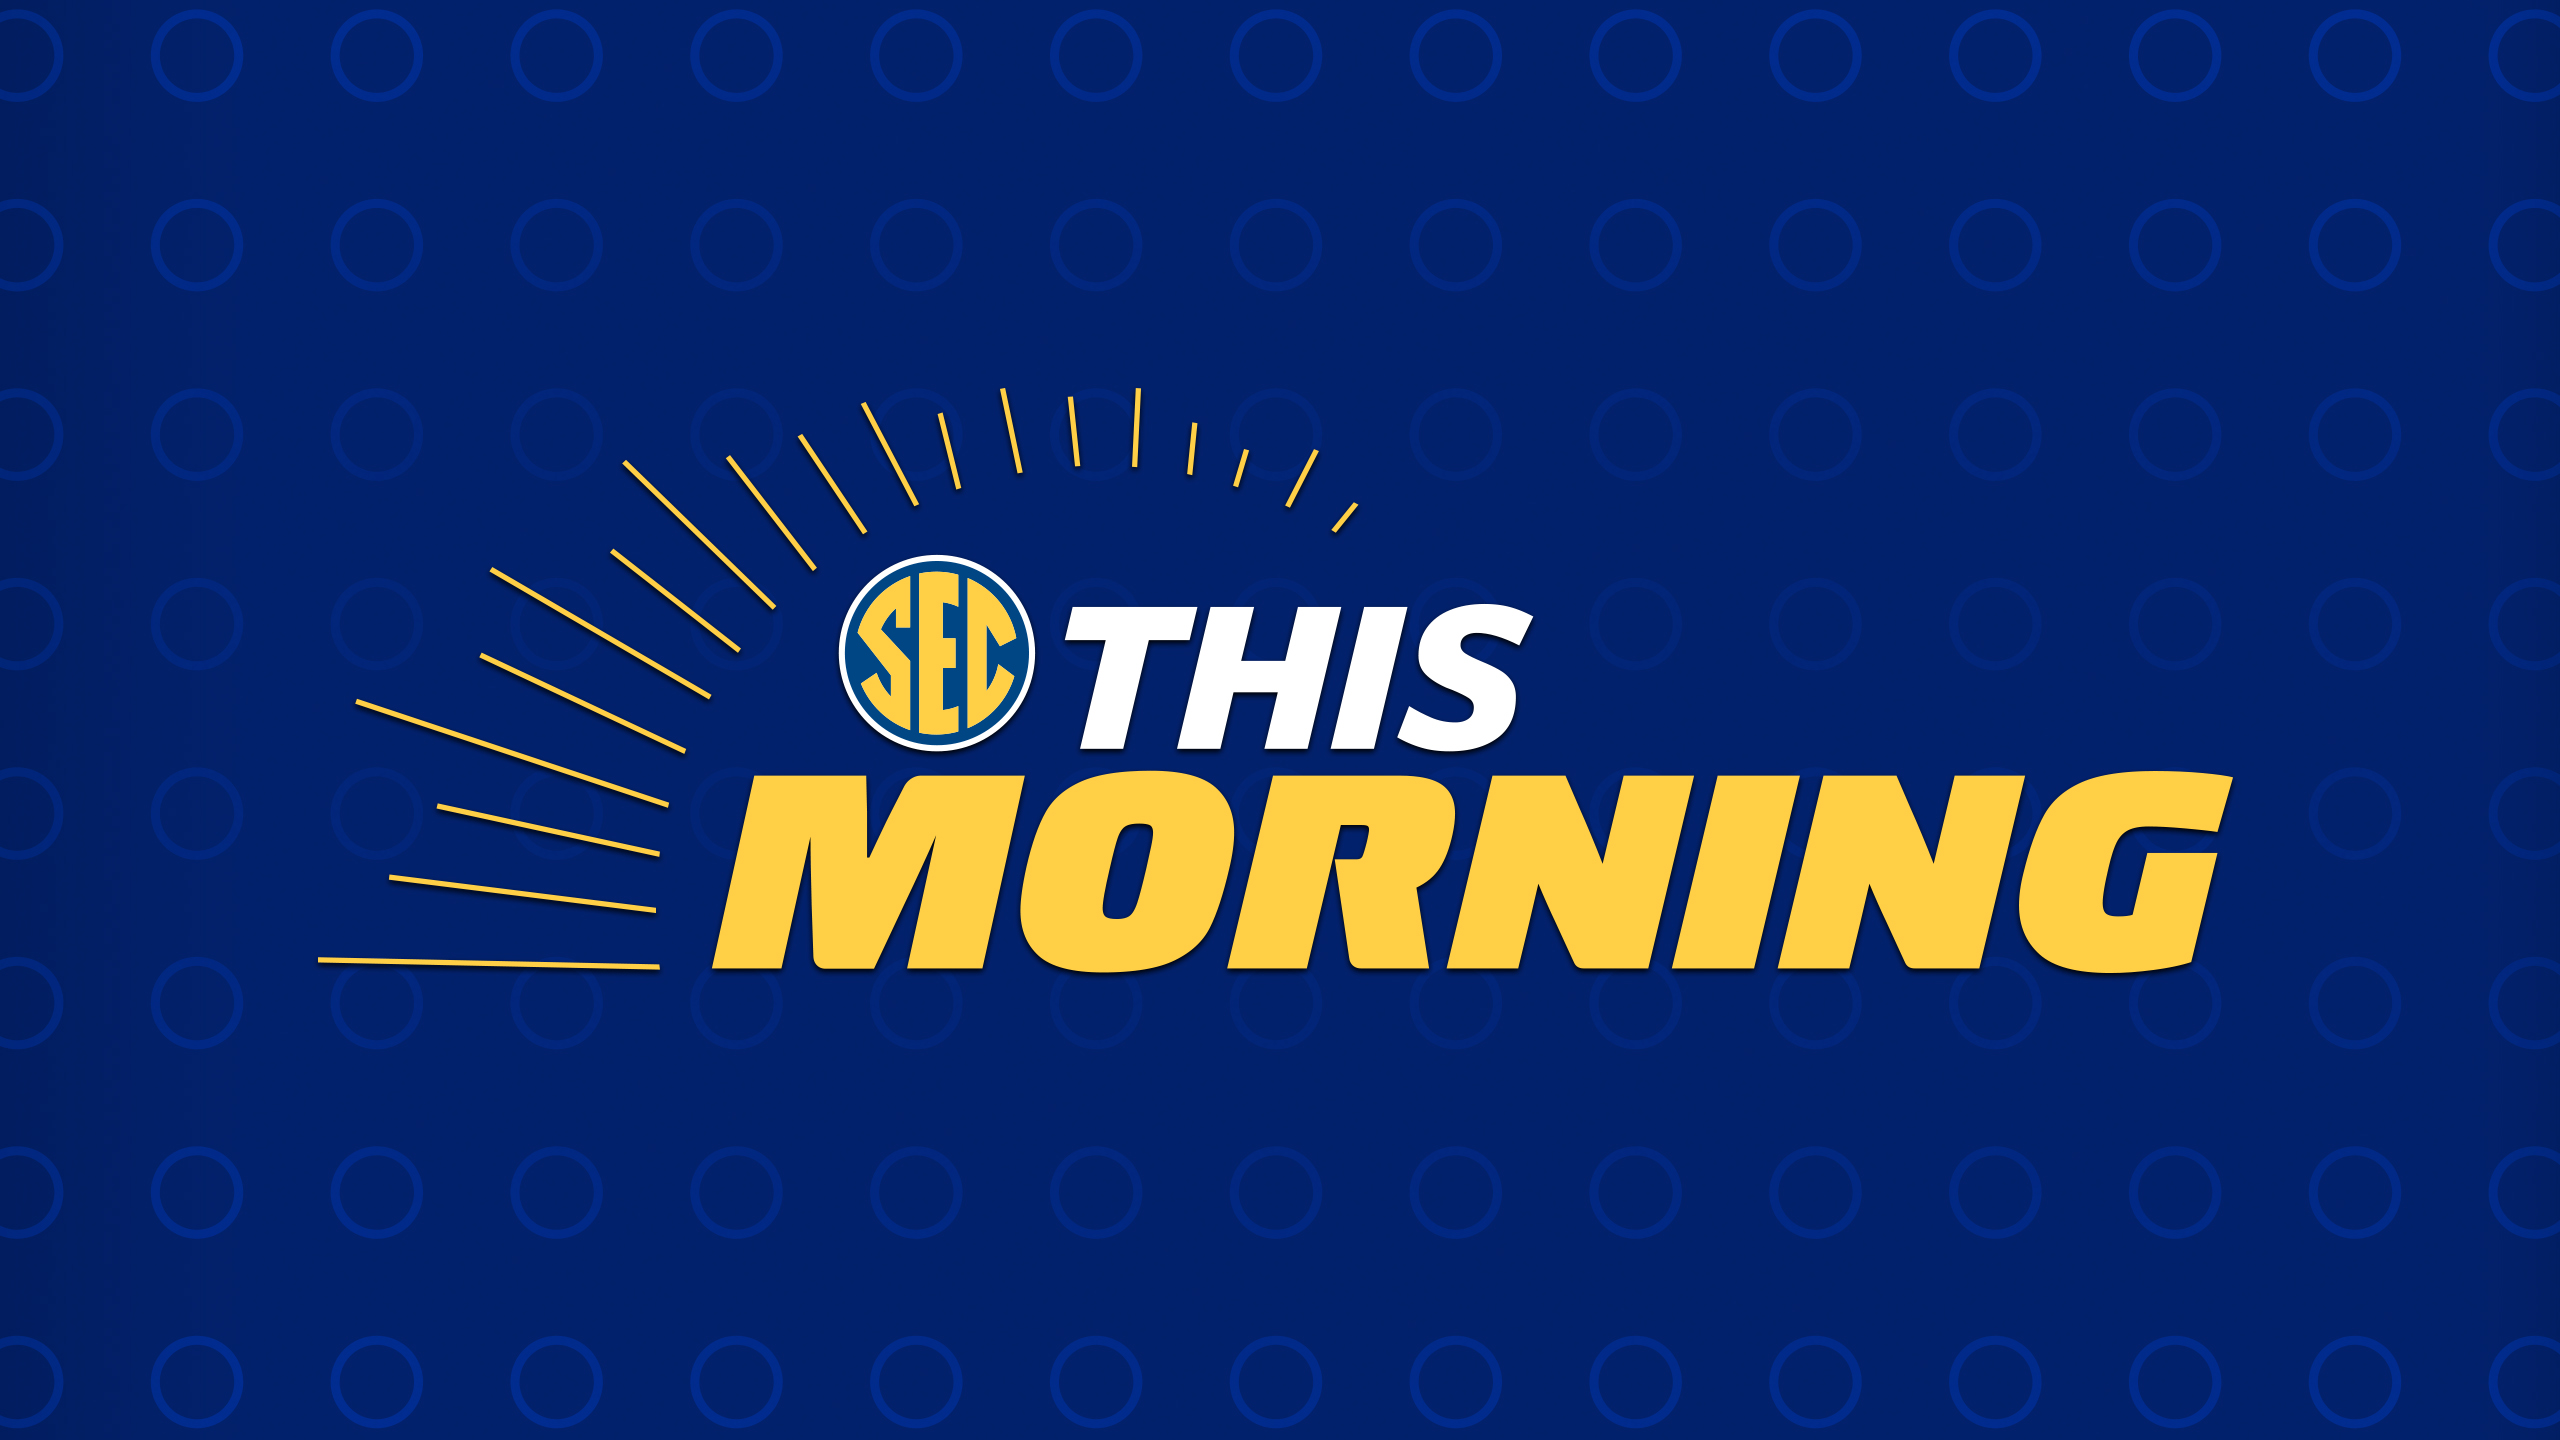 Tue, 11/13 - Best of SEC This Morning